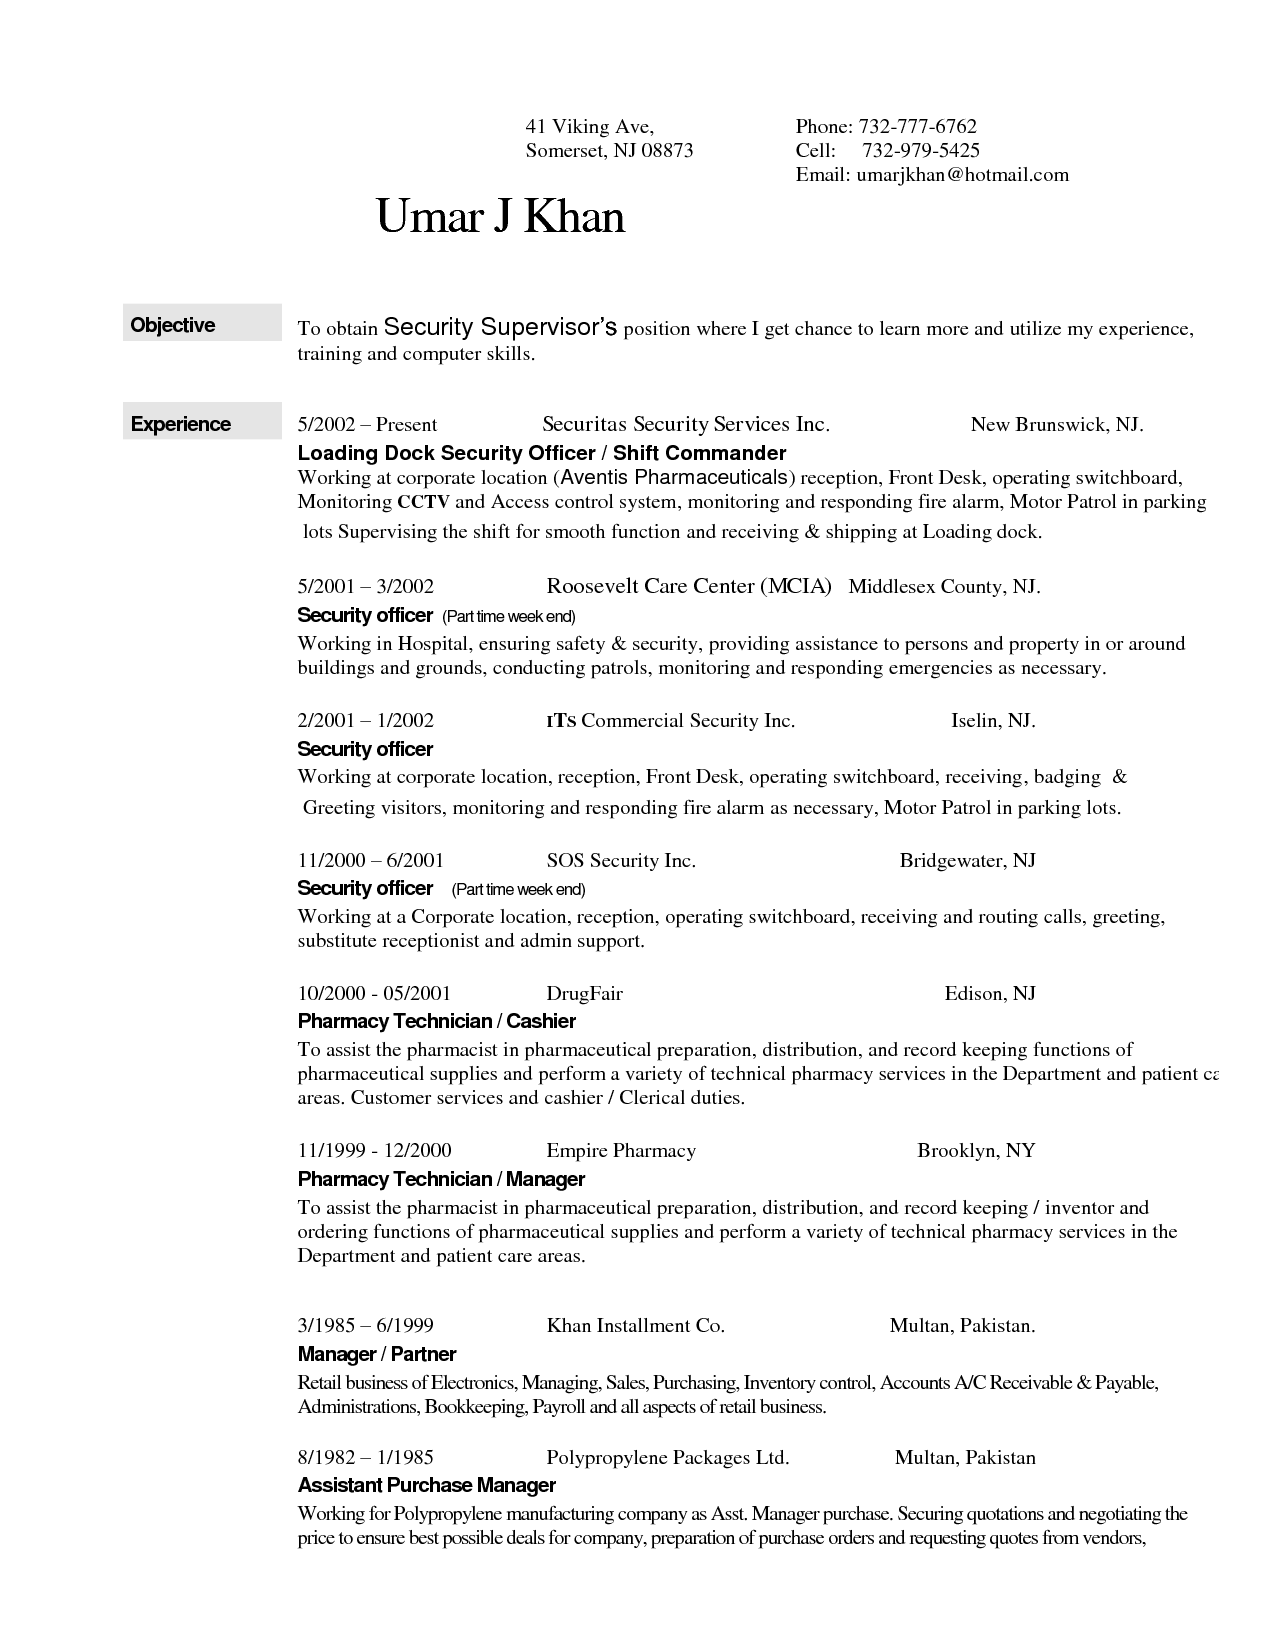 Entry Level Security Guard Resume Examples - http://www.jobresume ...